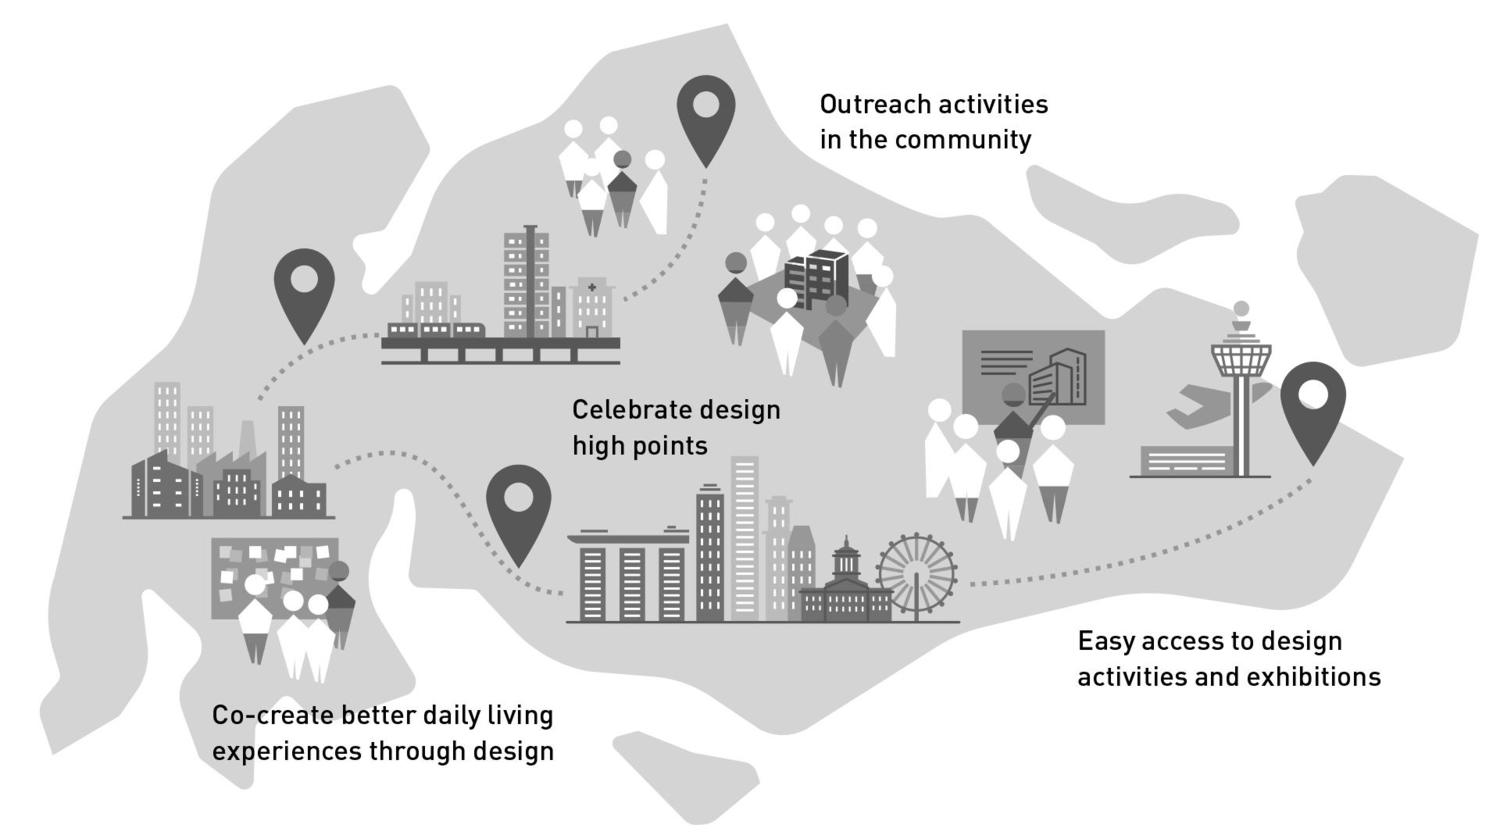 A stylised map and graphical icons of Singapore showing clusters of assets and activities, such as 'co-create better daily living experiences through design', 'celebrate design high points', 'outreach activities in the community' and 'easy access to design activities and exhibitions